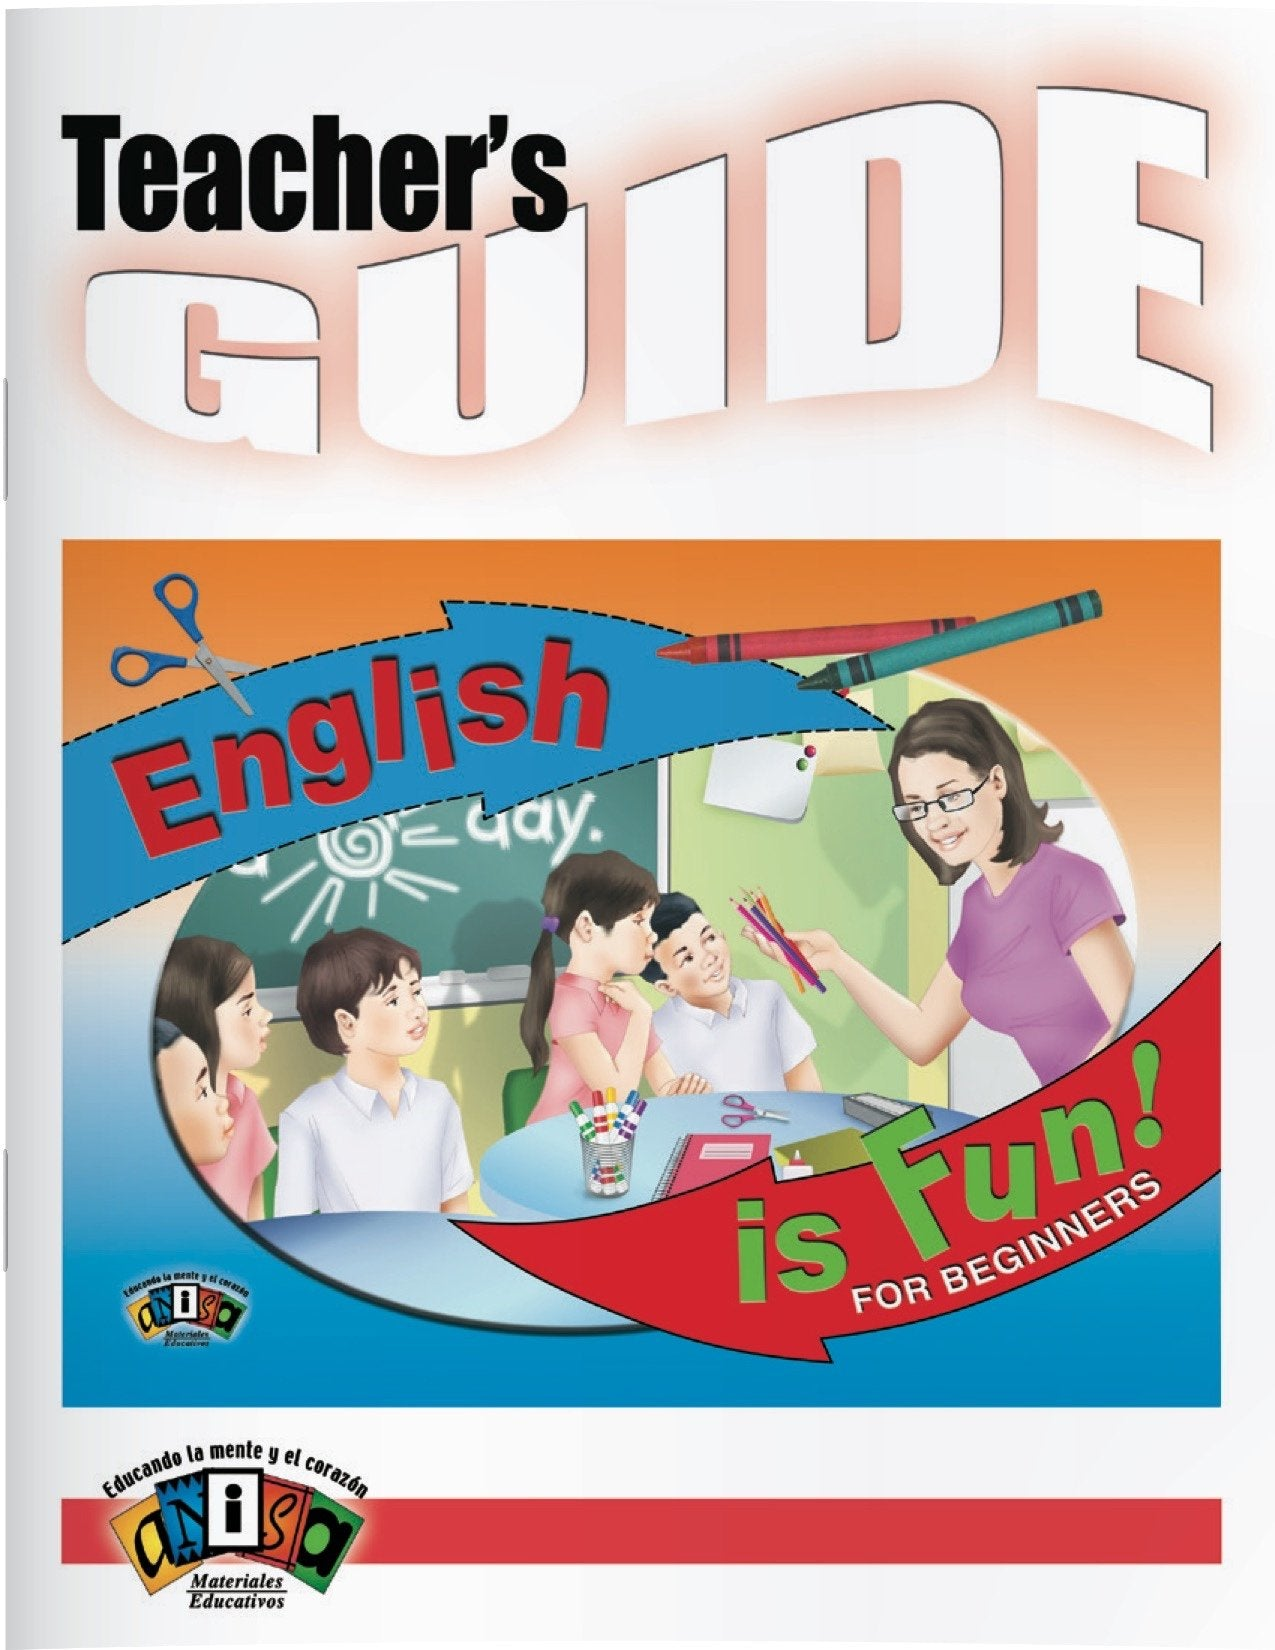 AI-L000G English is fun! For Beginners (Teacher's Guide)